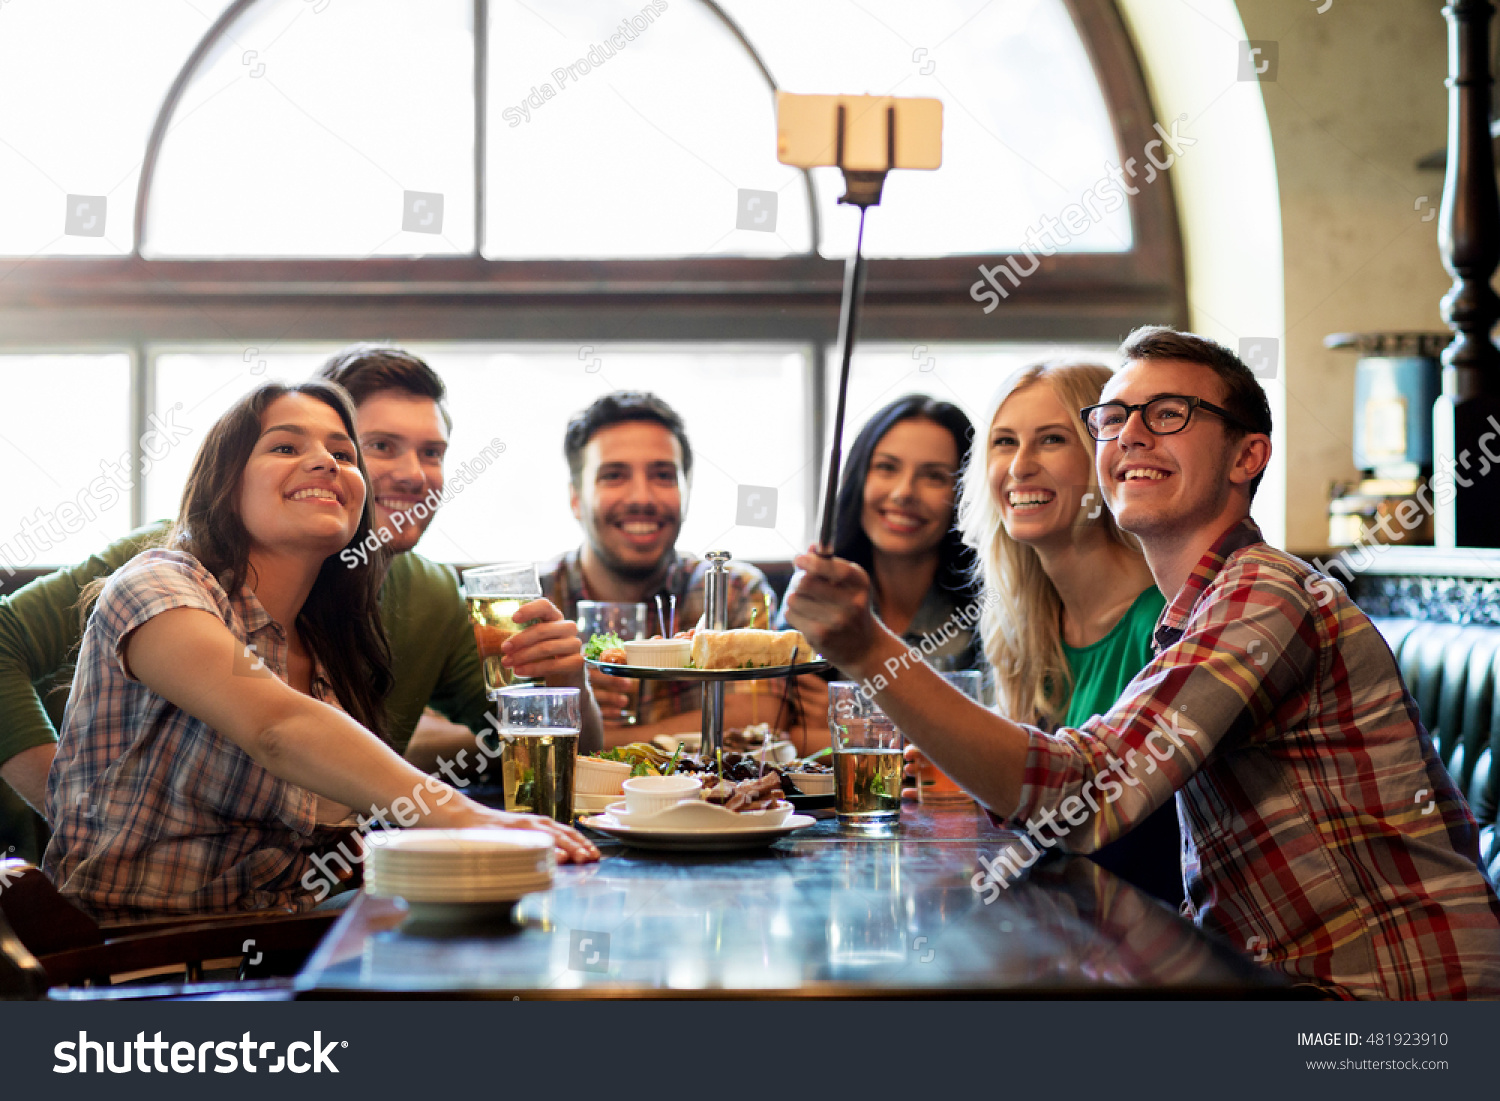 people leisure friendship and technology concept happy friends taking picture by smartphone selfie stick drinking beer and eating snacks at bar or pub